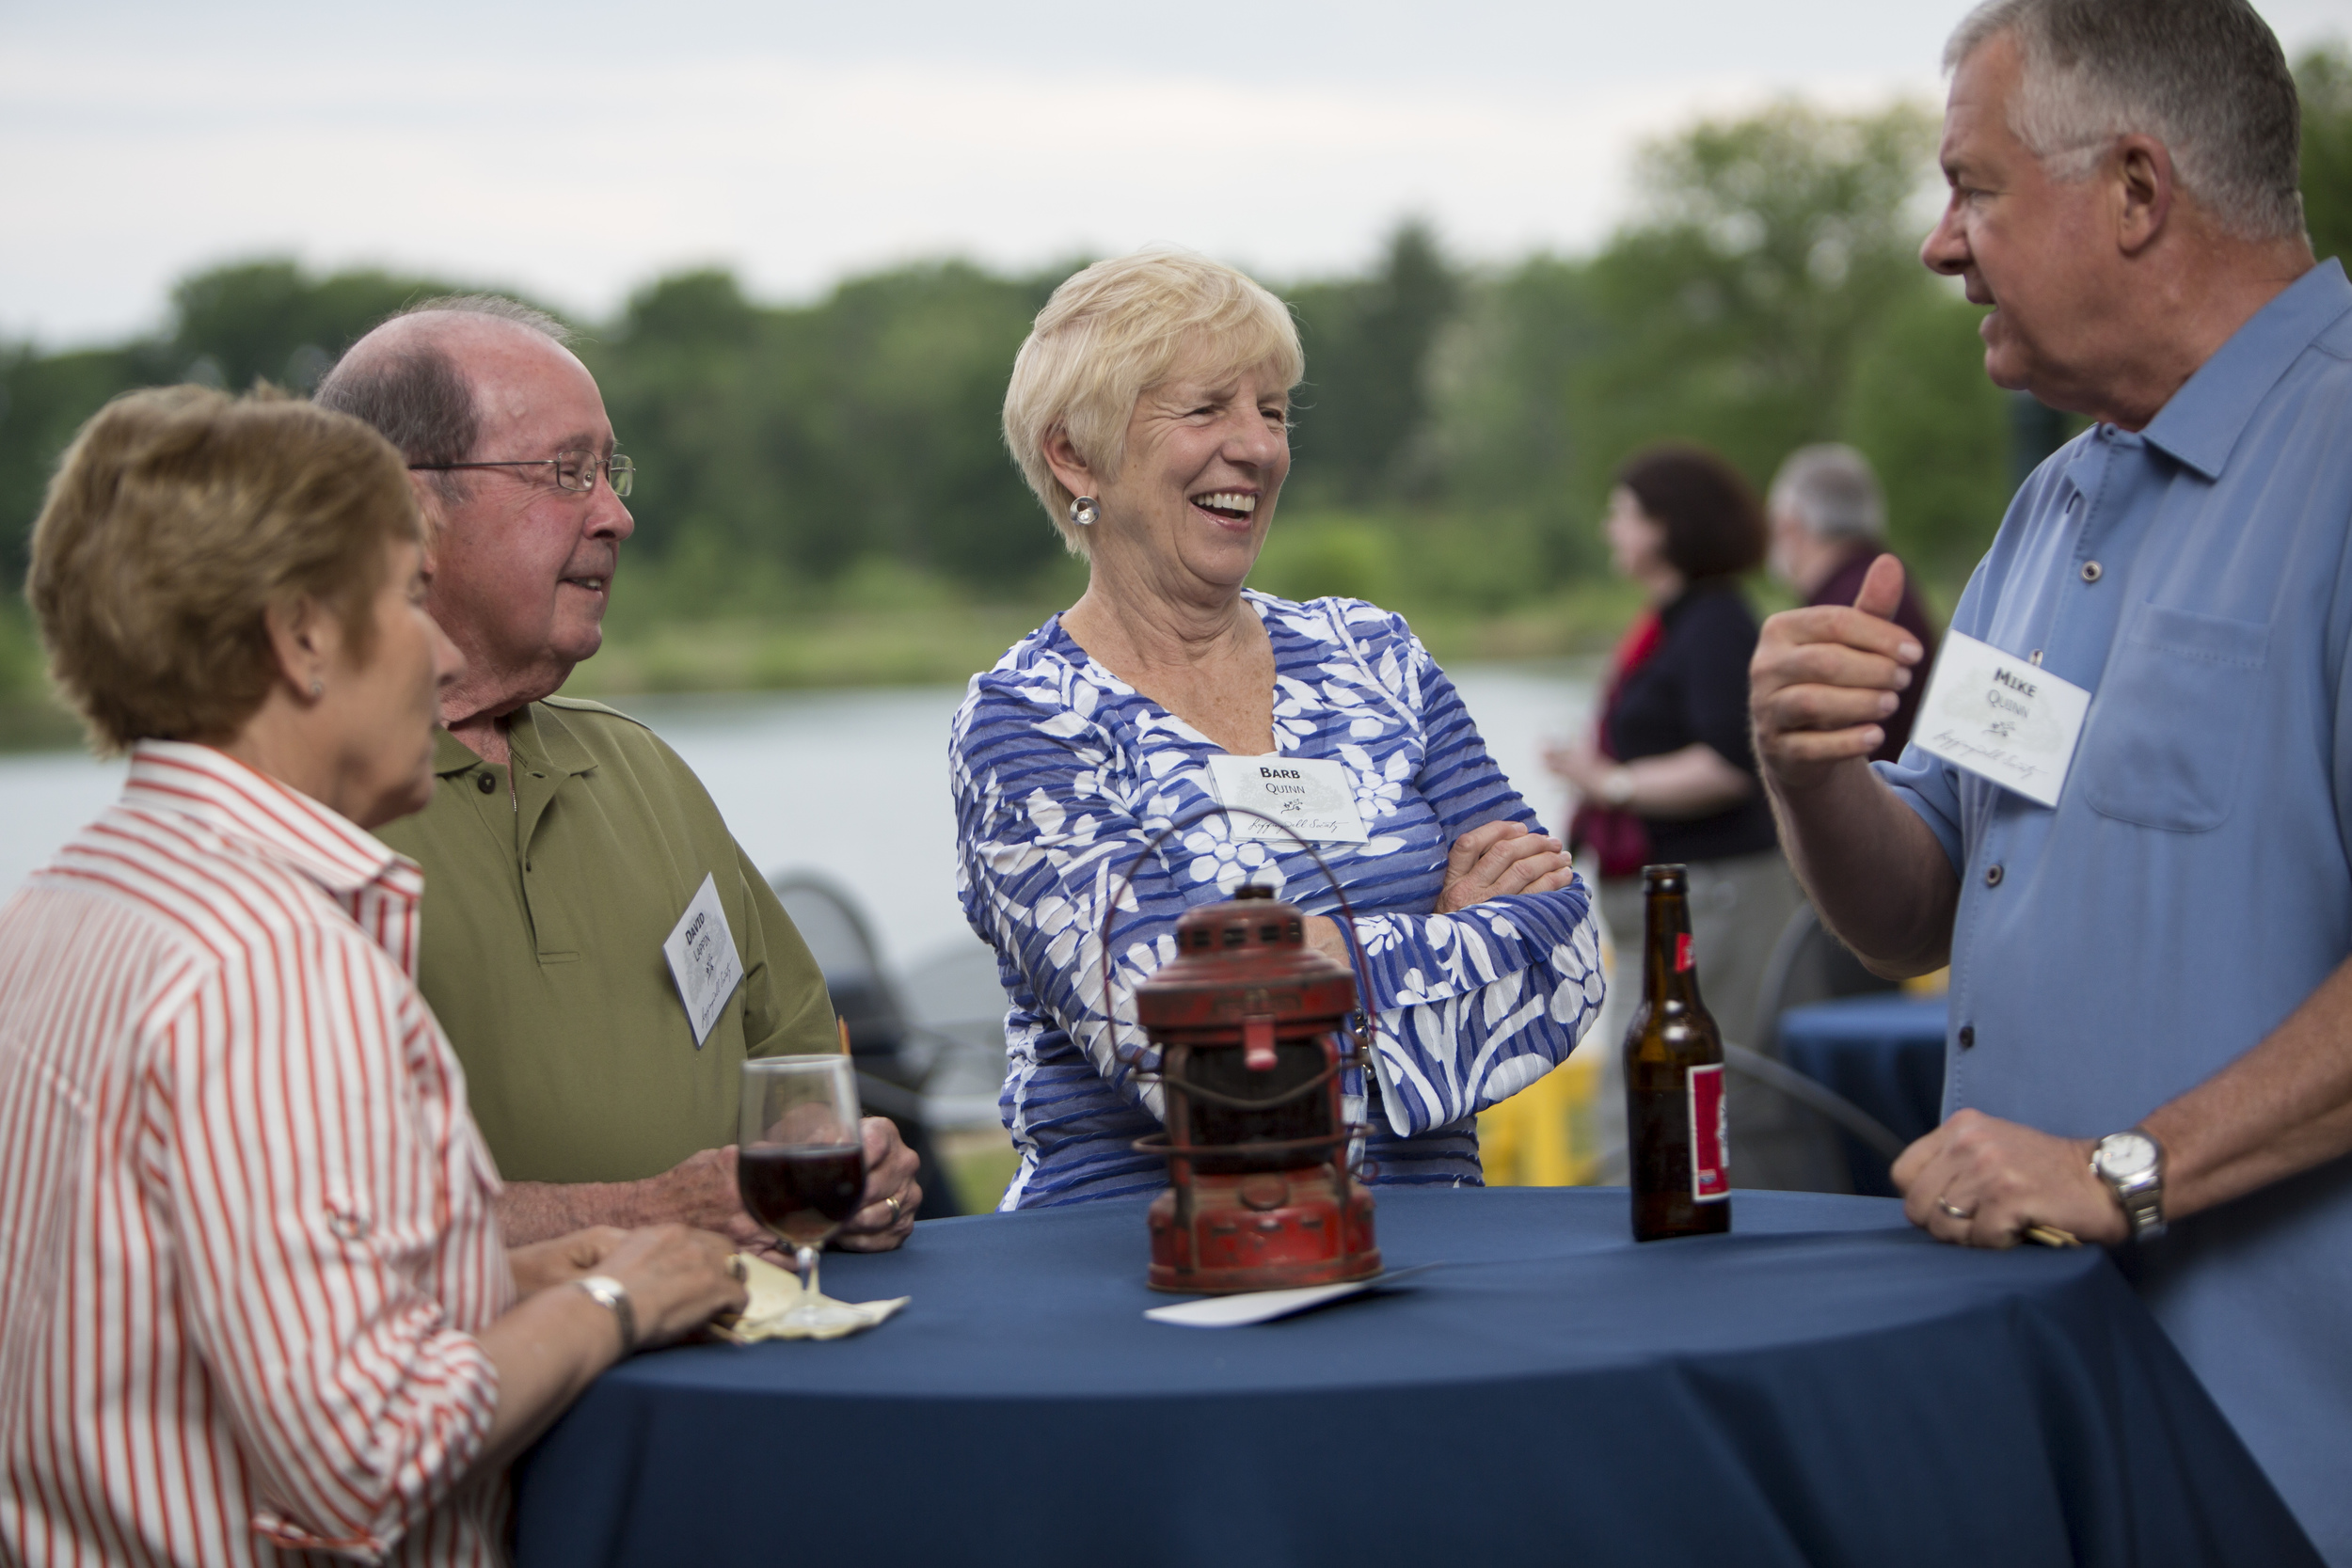 Leffingwell Society event, photographed by Jerry Naunheim